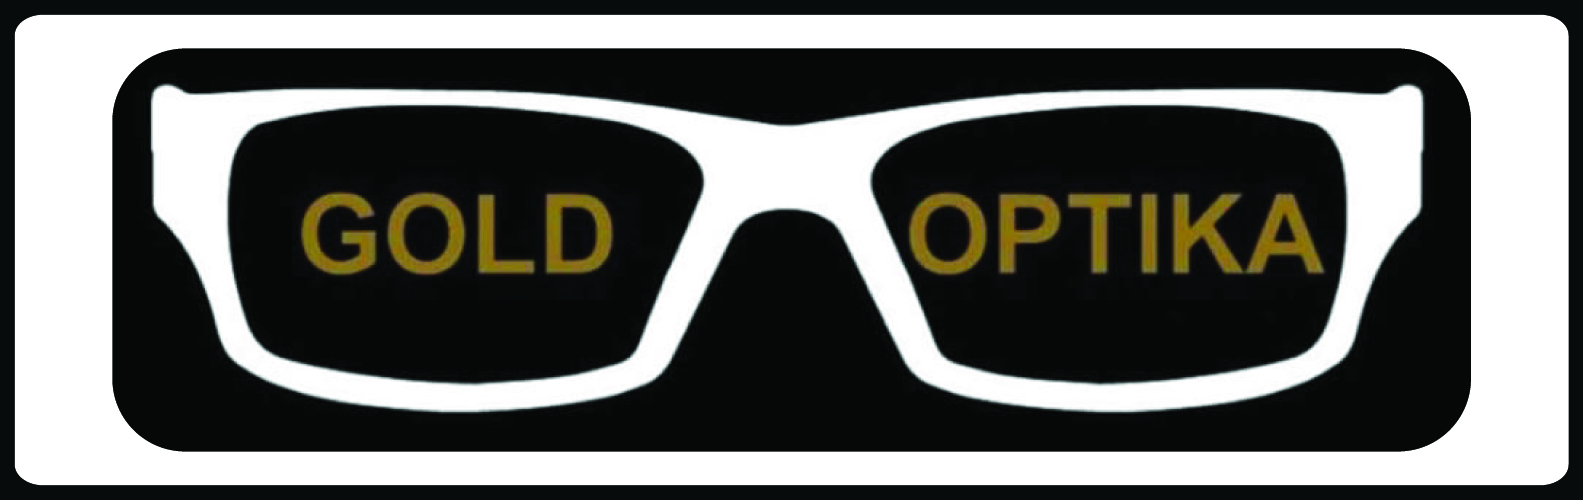 Gold Optika